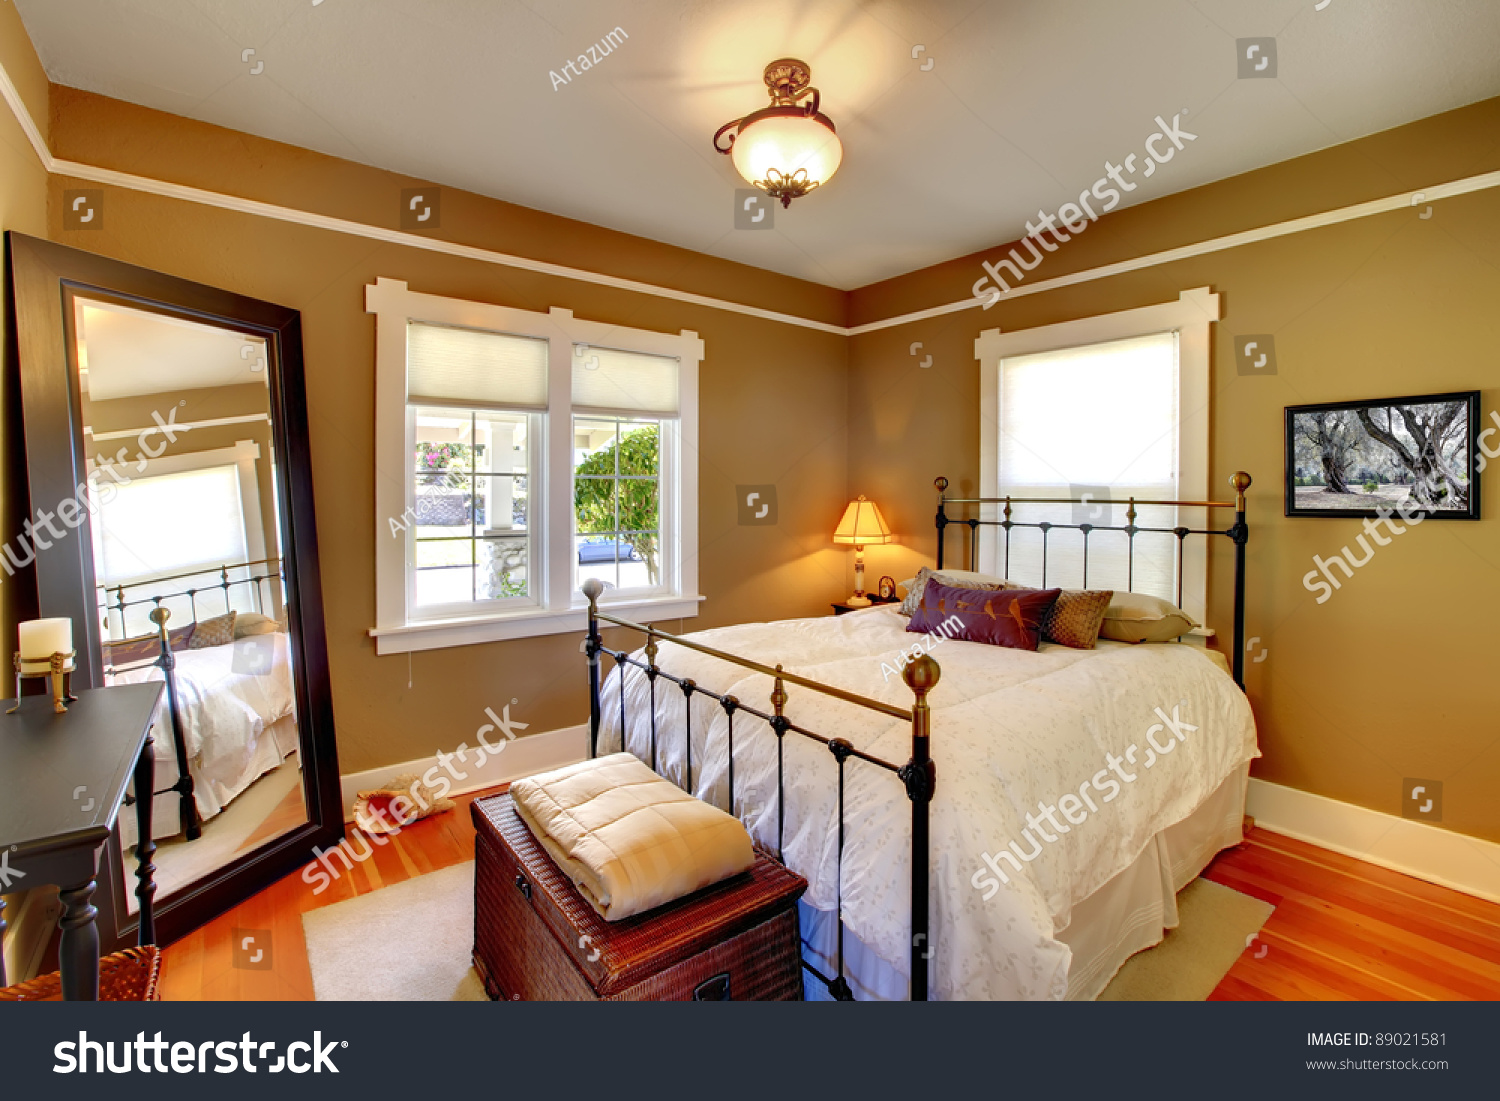 Bedroom interior house design stock photo 89021581 for Interior designs of the house